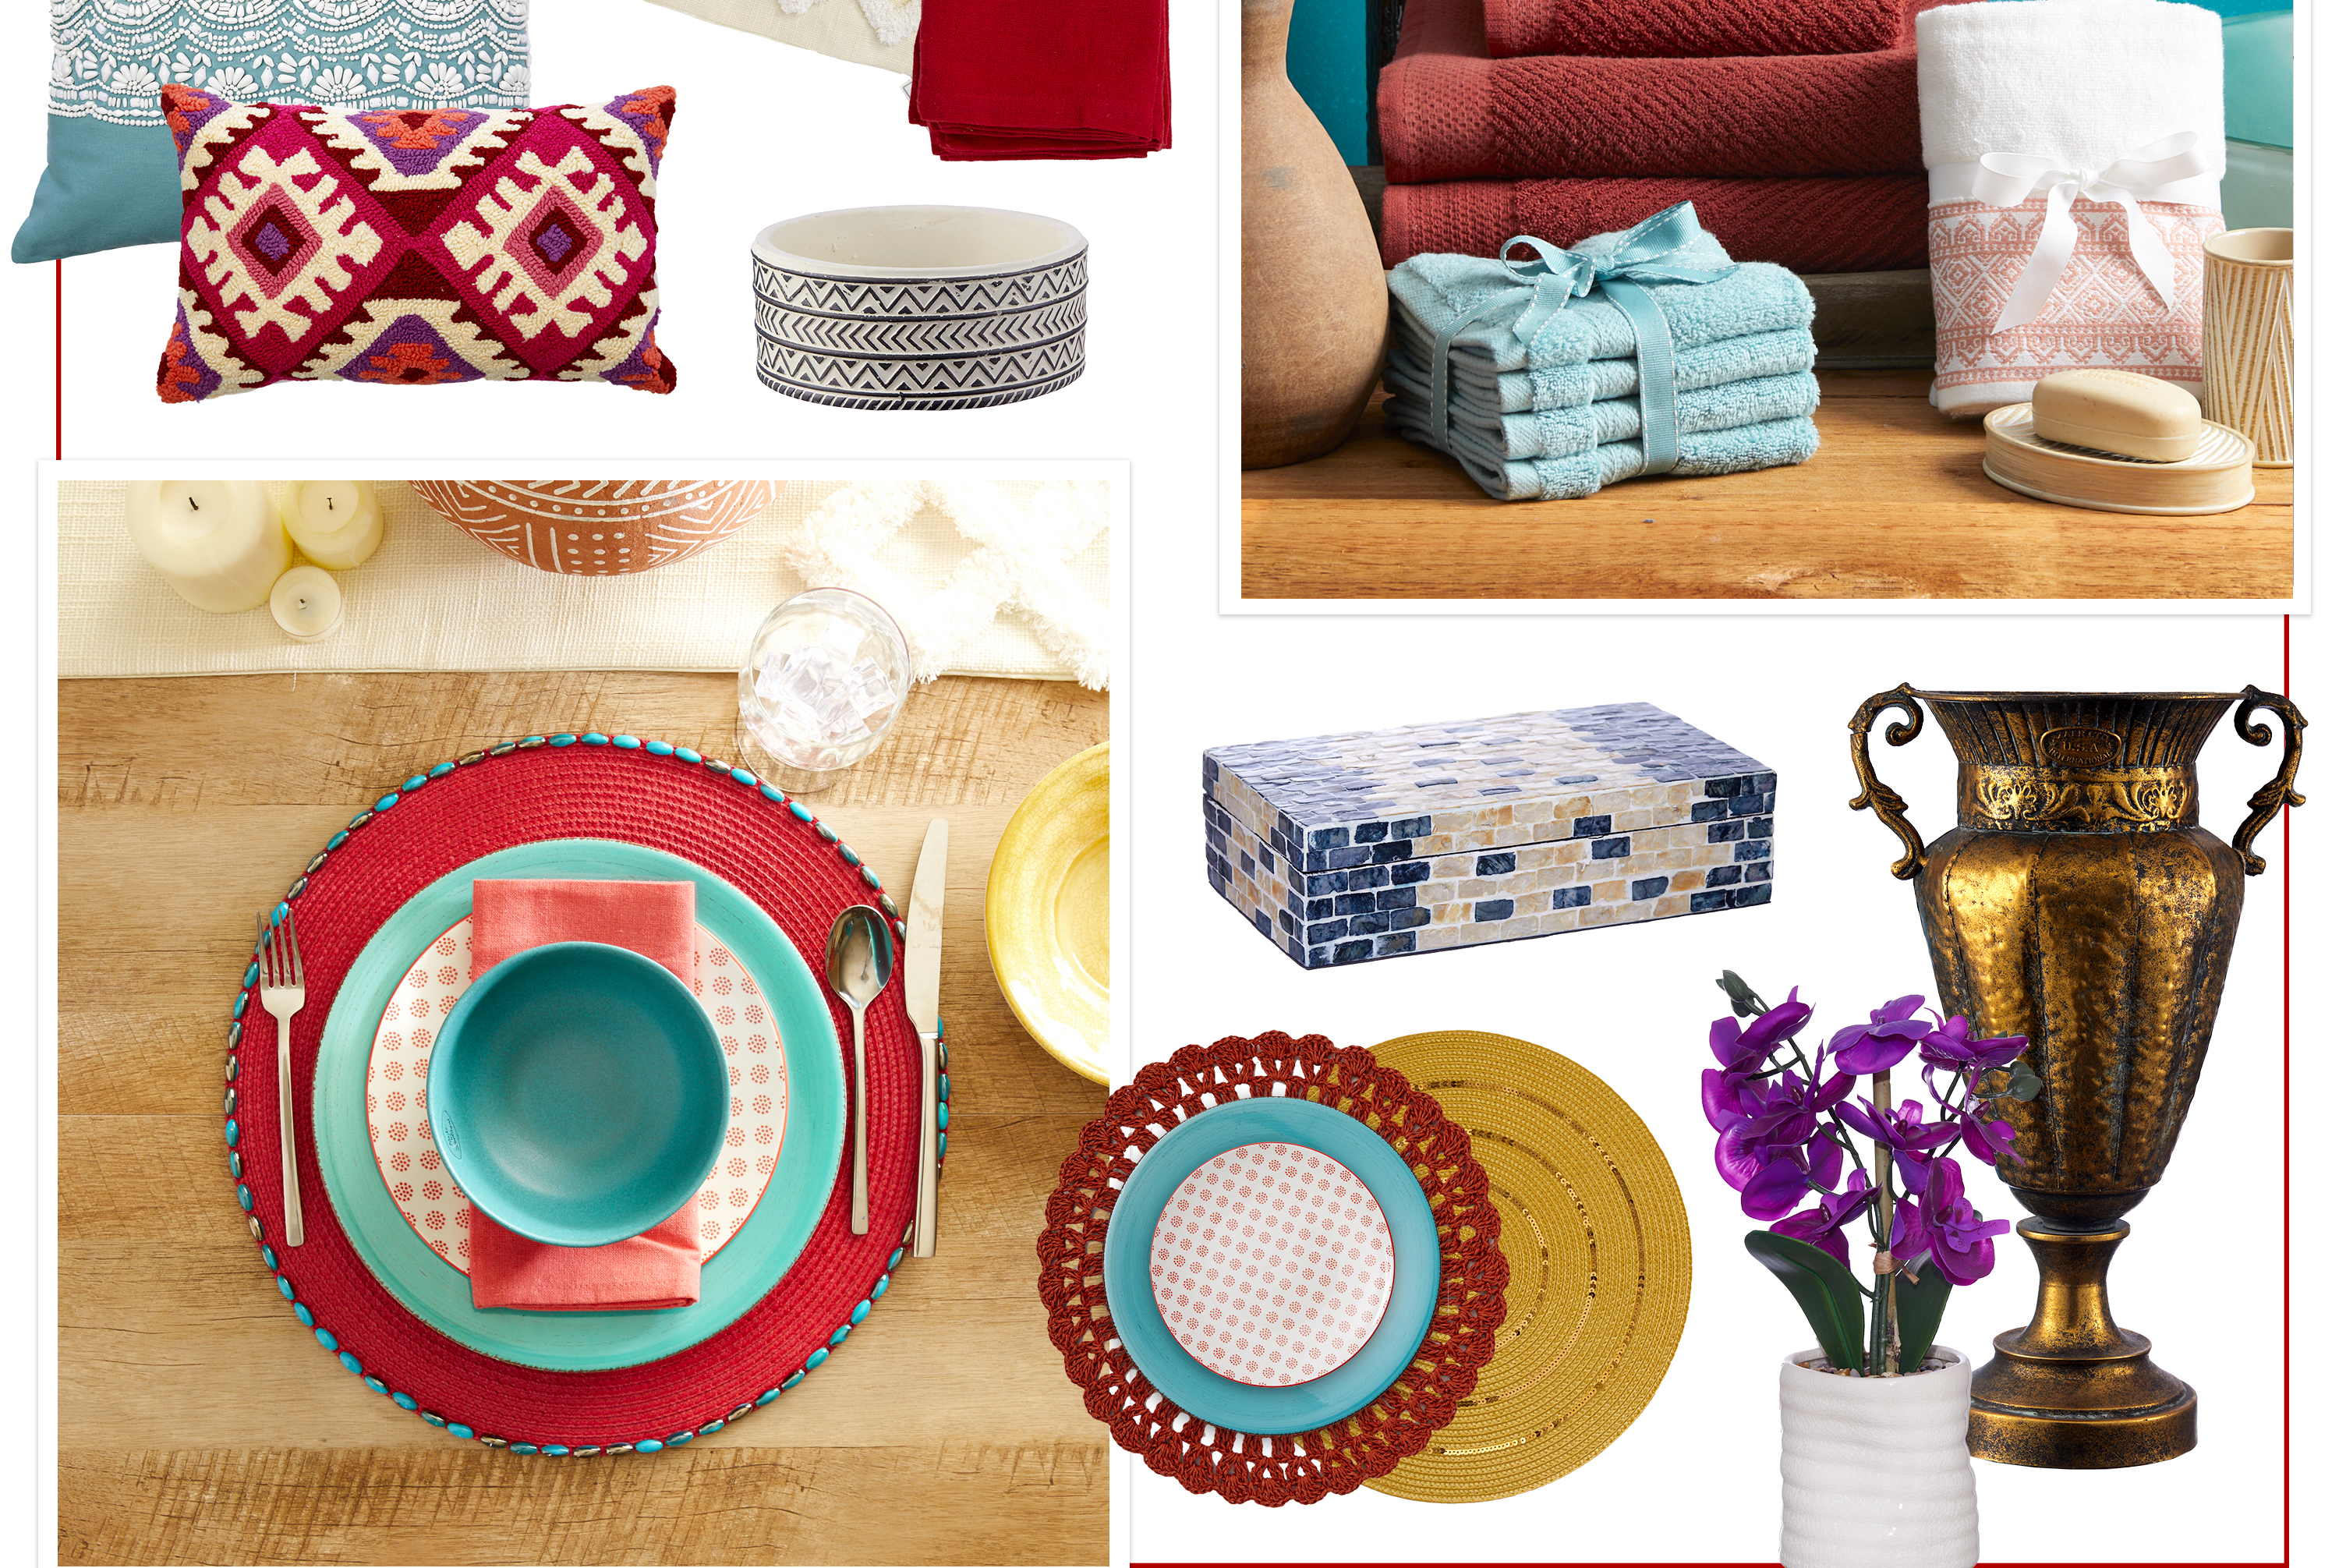 Moroccan Escape - Go for this global look by incorporating spicy reds with vibrant patterns and bold textures.